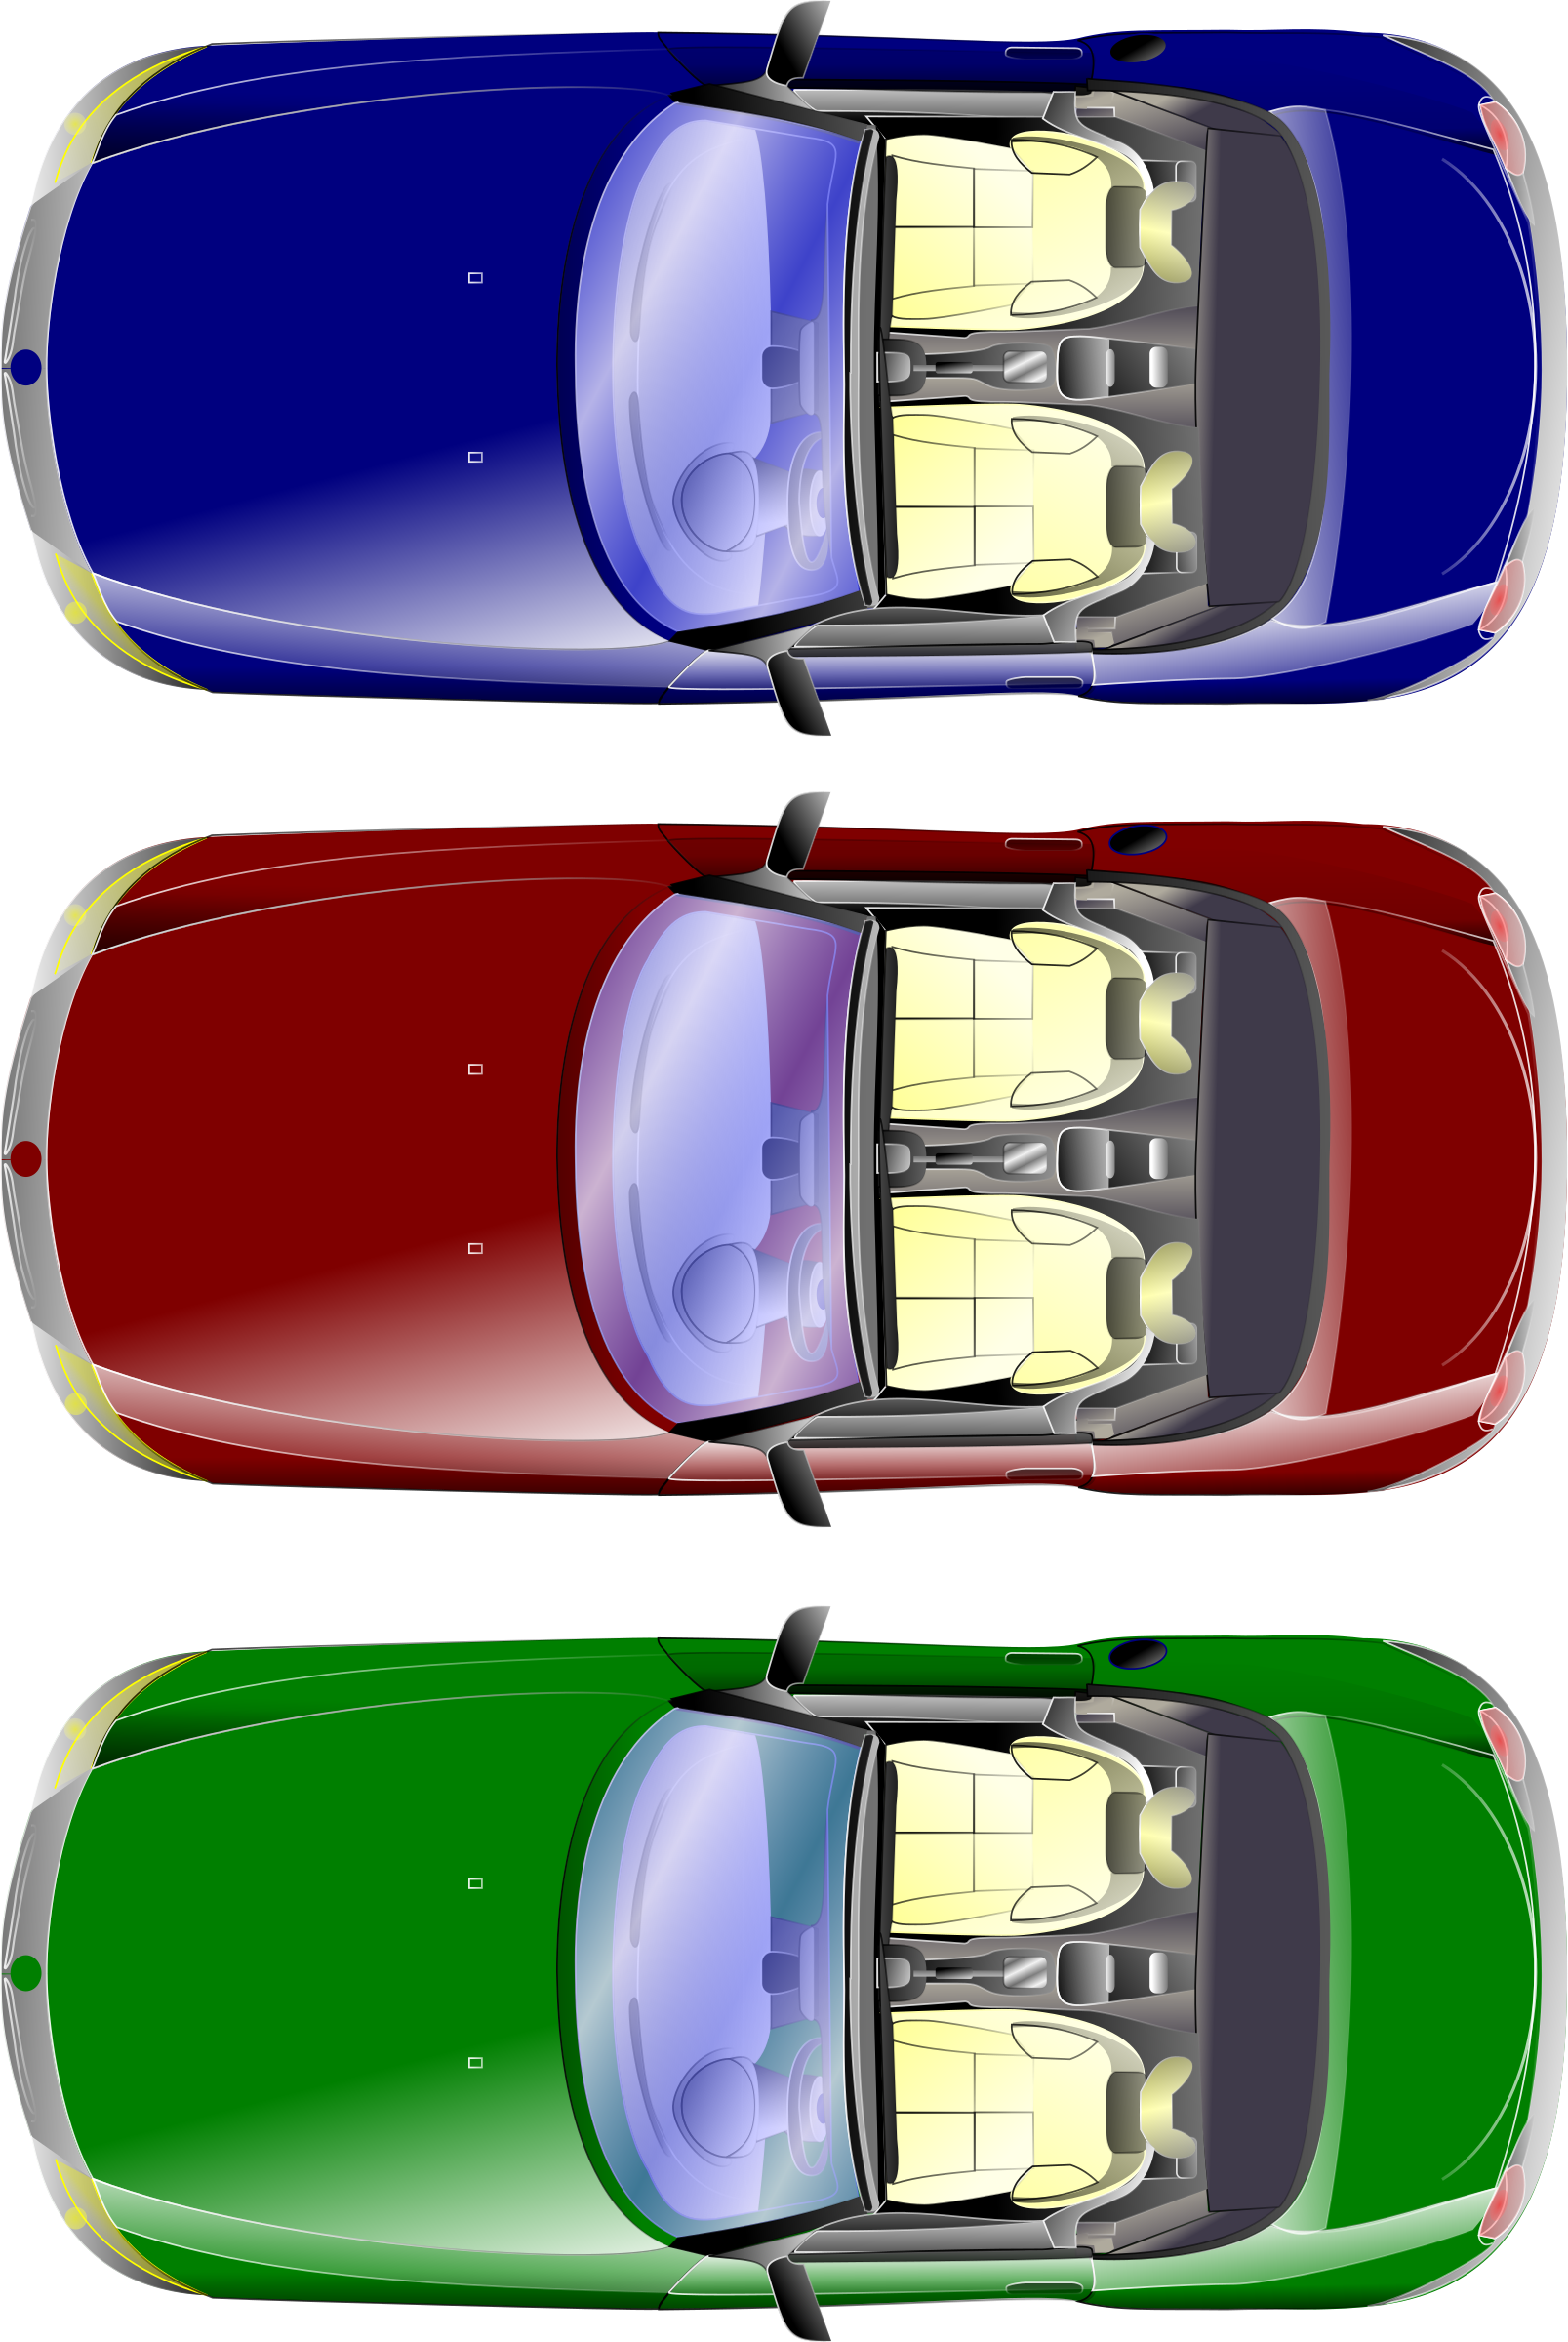 Car restoration clipart picture free stock car top view by obi | clipart | Pinterest | Cars picture free stock